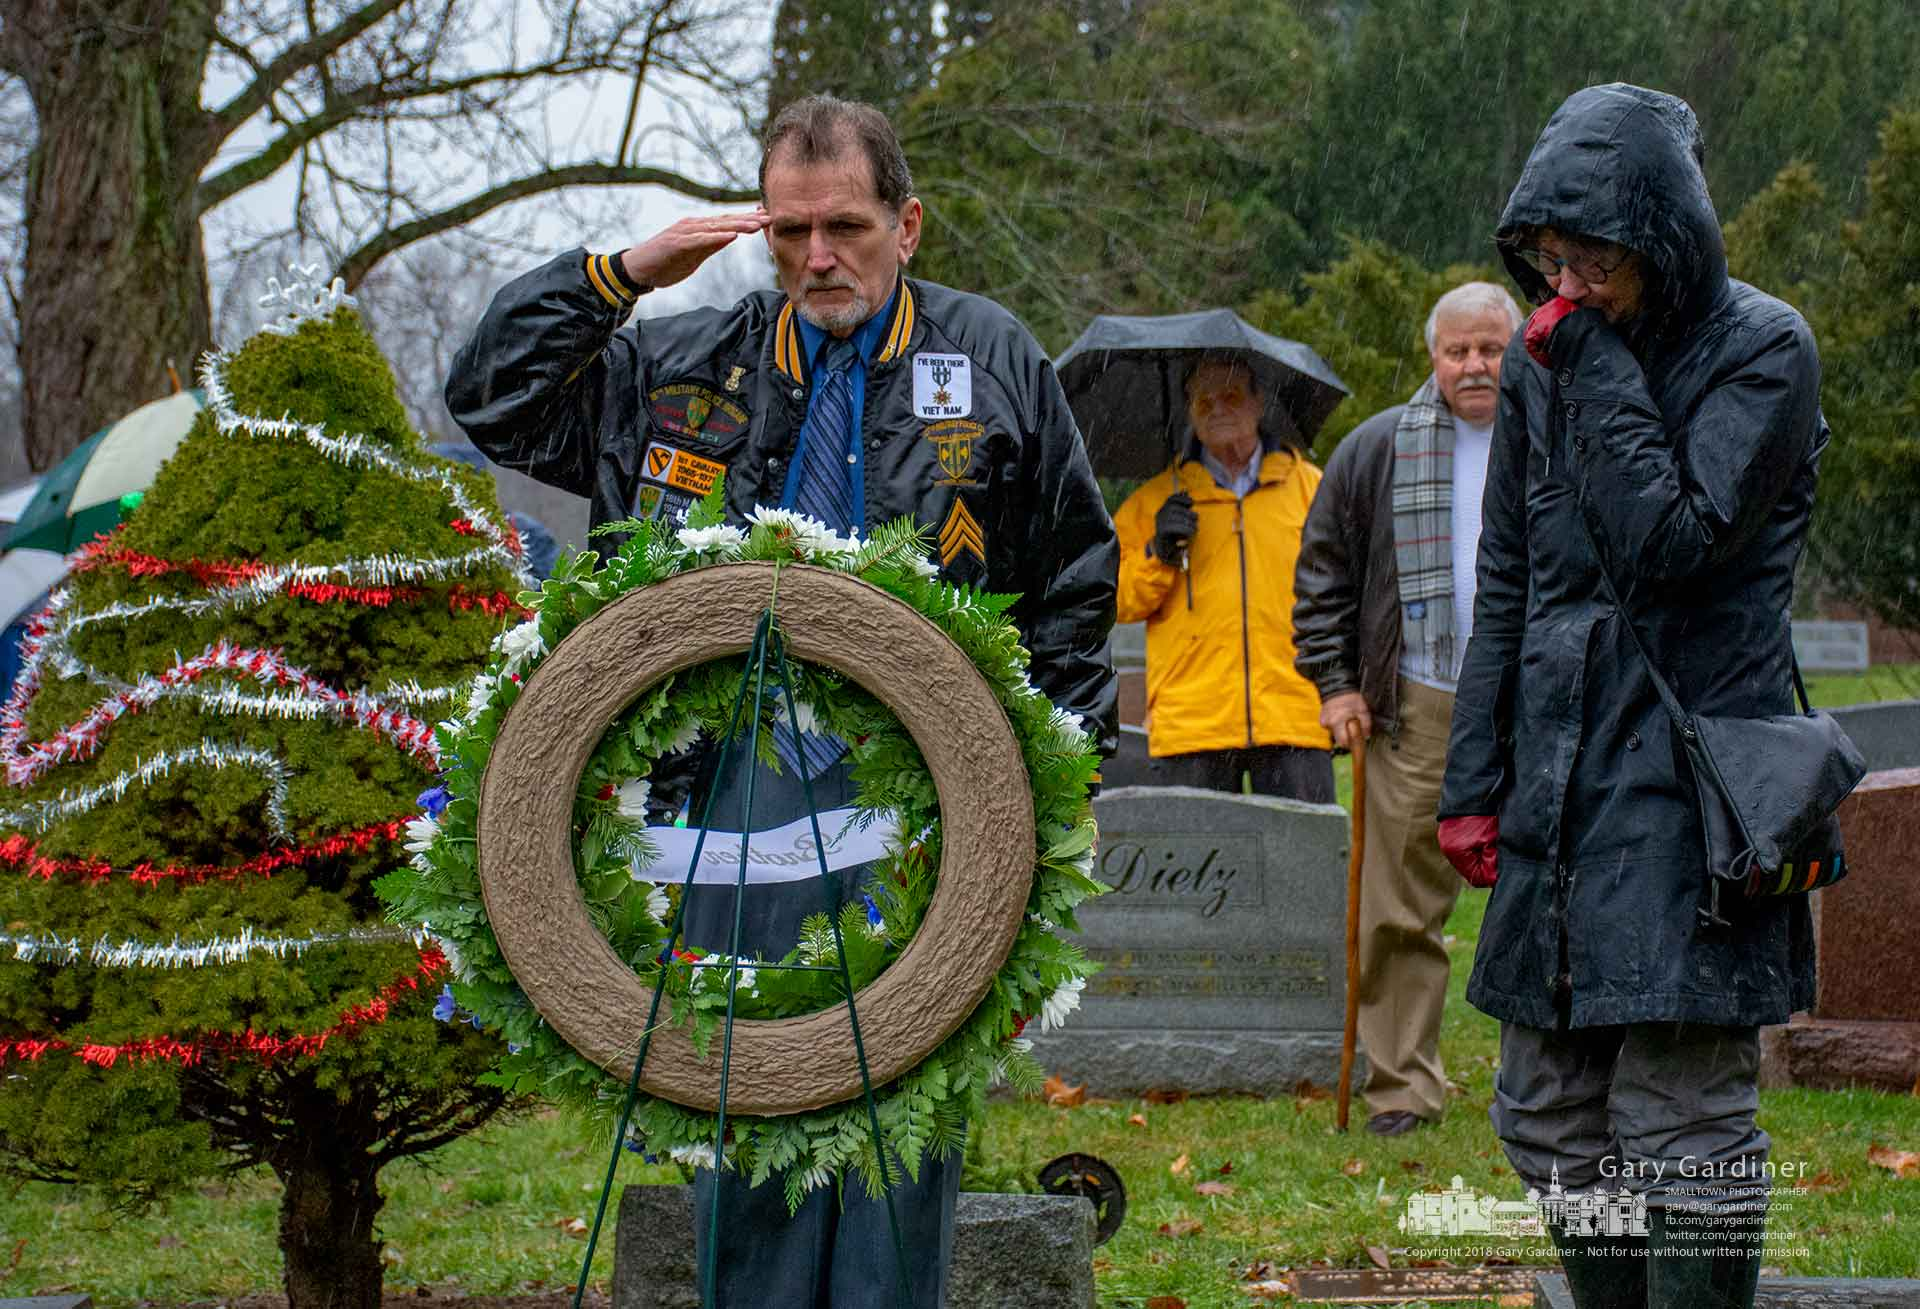 Family and friends gather at the grave of Dingus Banks as it received the first wreath placement during Wreaths Across America t Otterbein Cemetery Saturday. My Final Photo for Dec. 15, 2018.